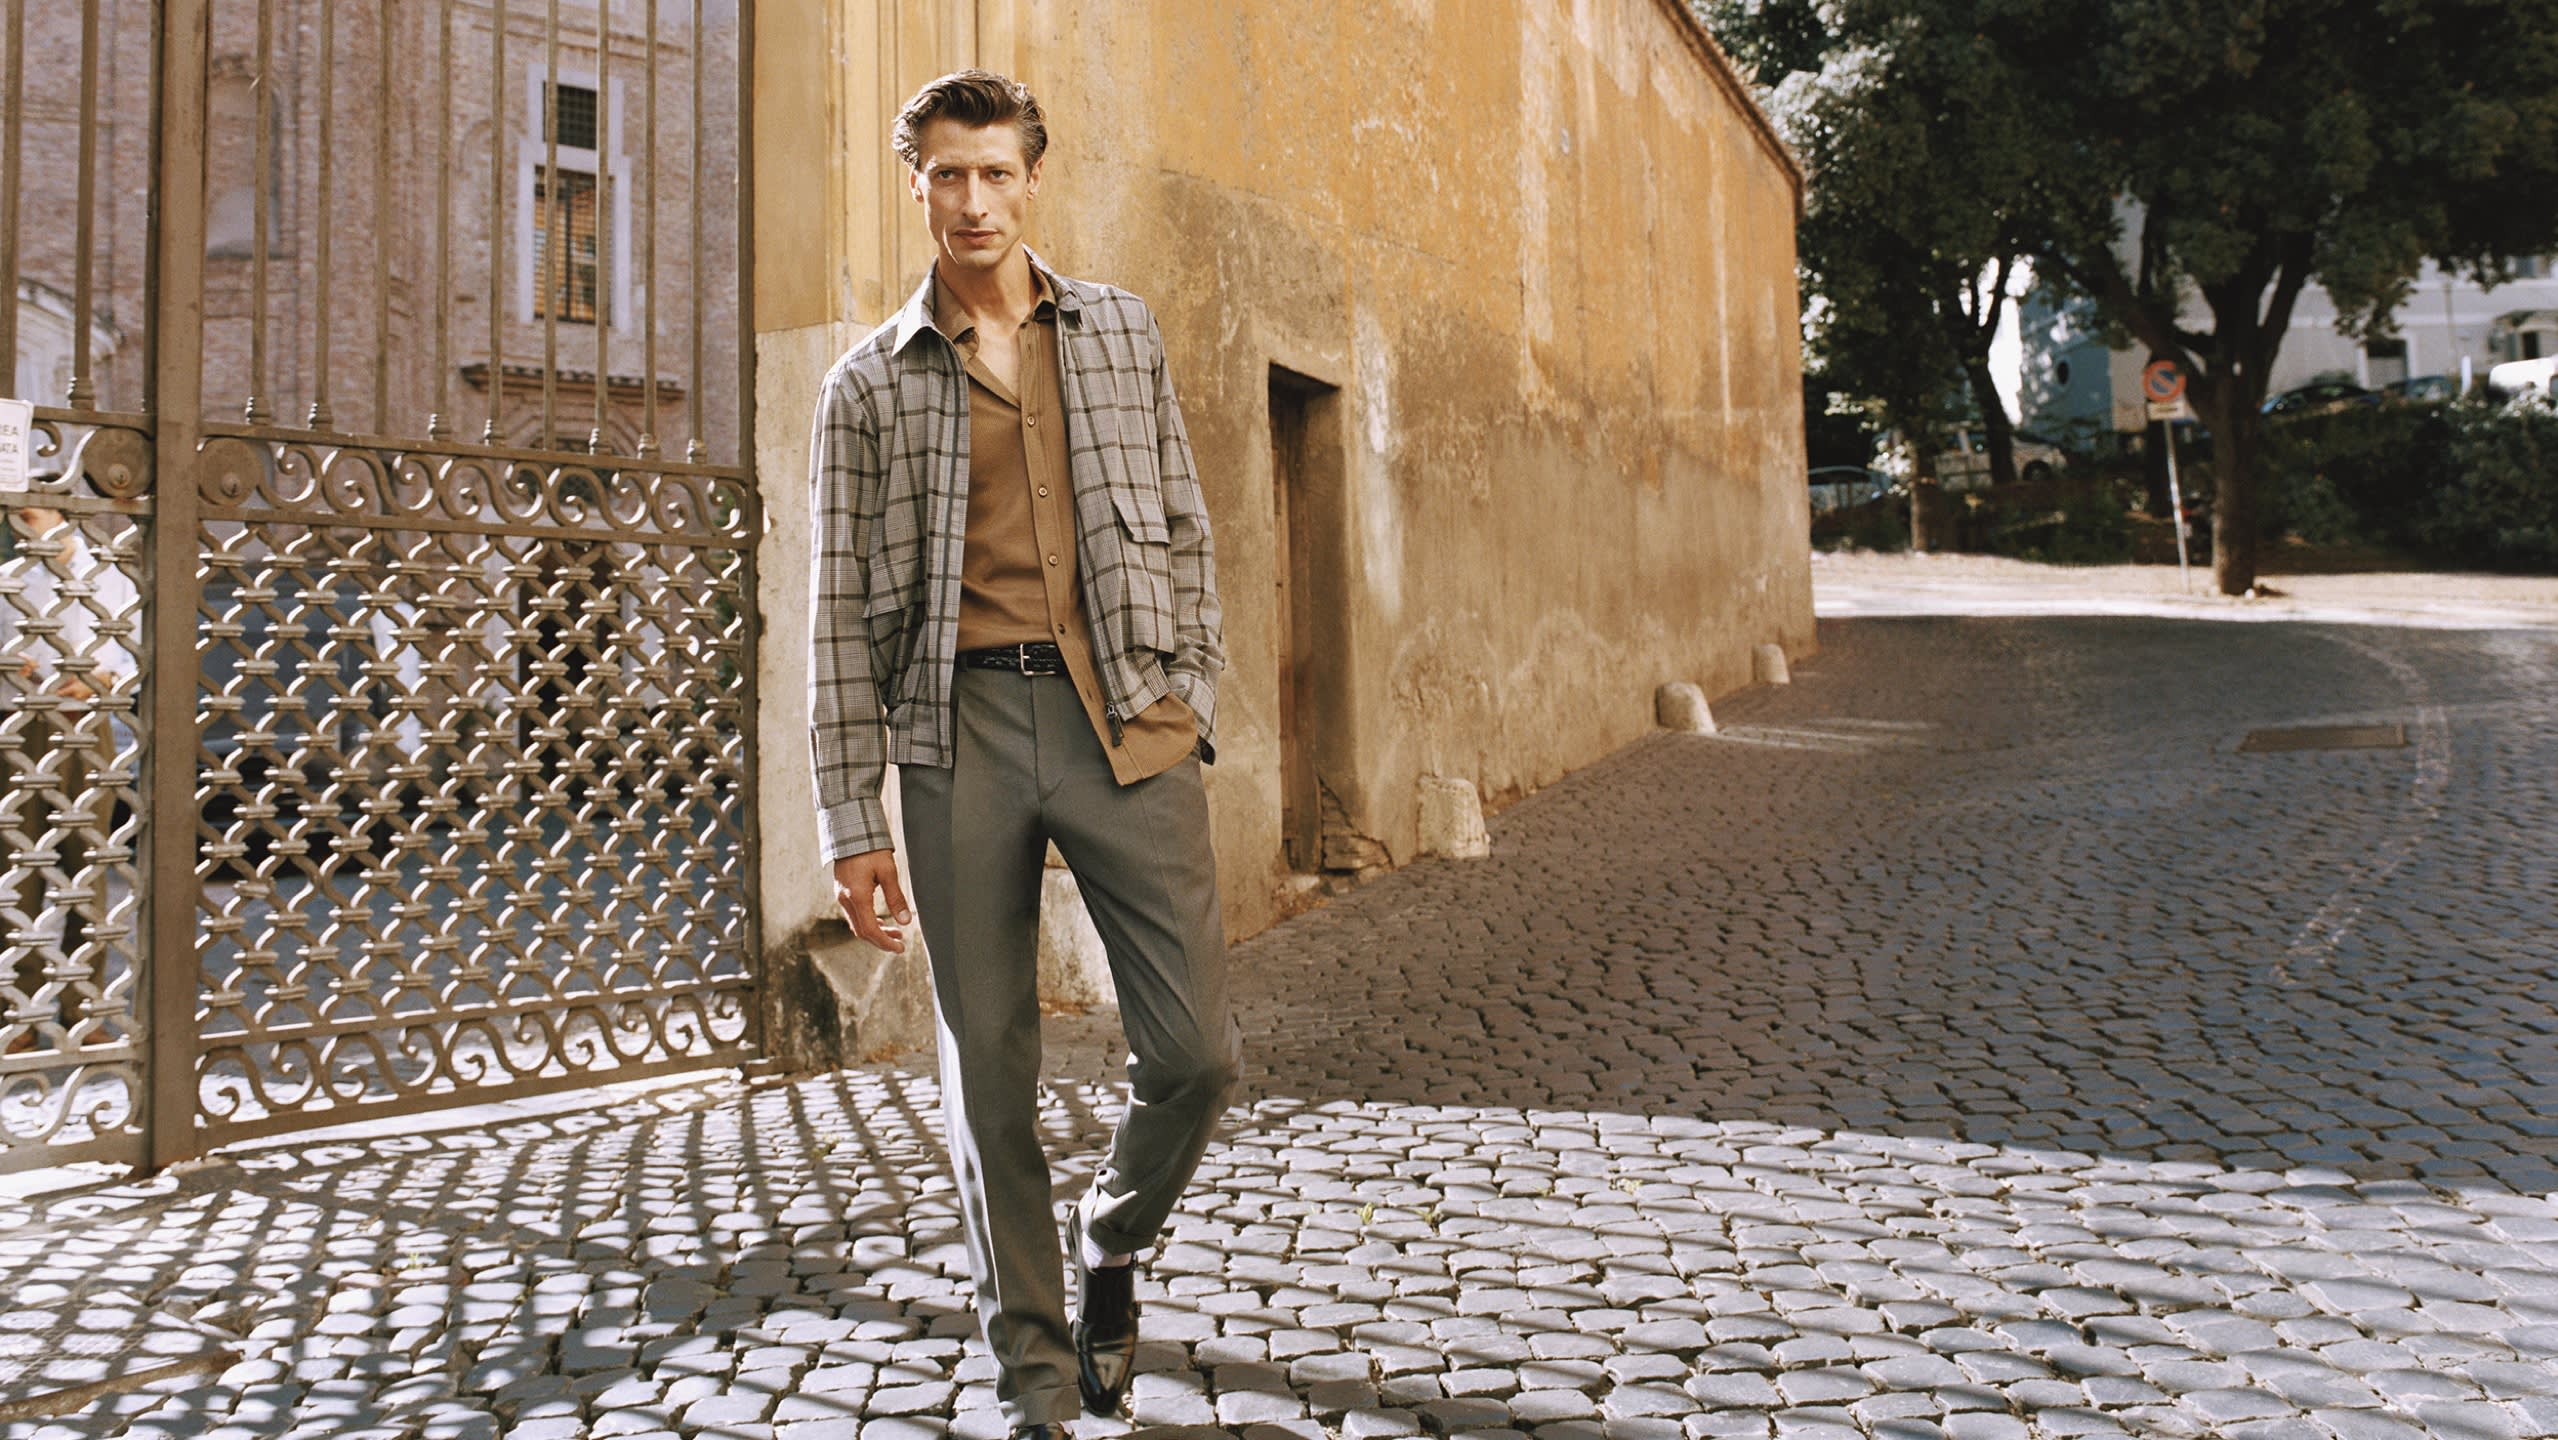 Male model wearing a daywear outfit from the Brioni Spring/Summer 2021 Collection